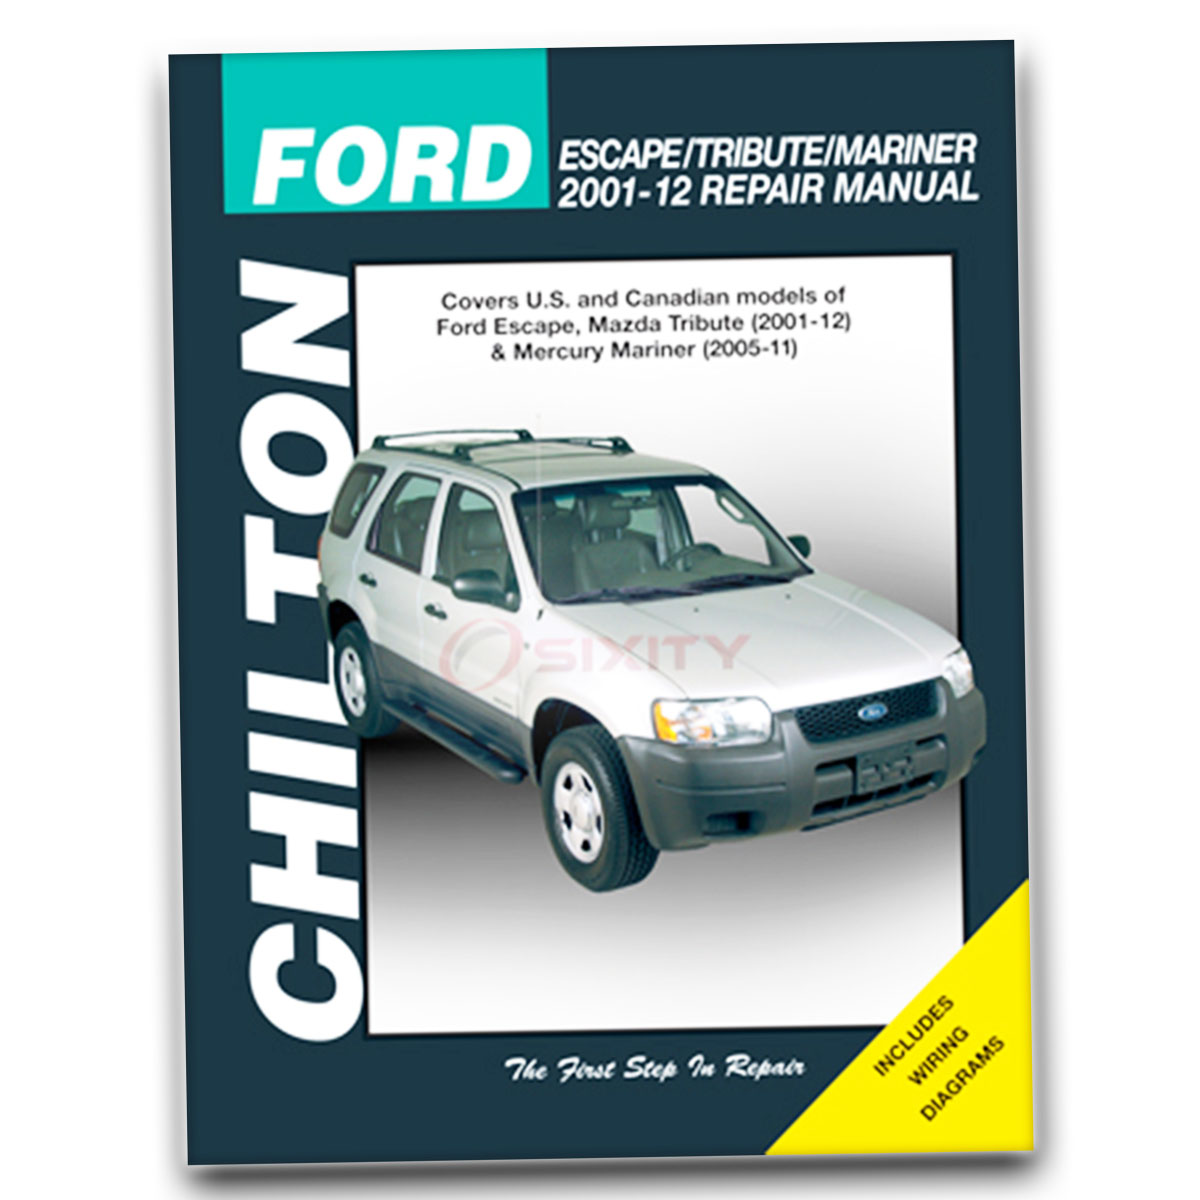 Chilton Repair Manual for Ford Escape Limited Hybrid XLT No Boundaries Sport  nk